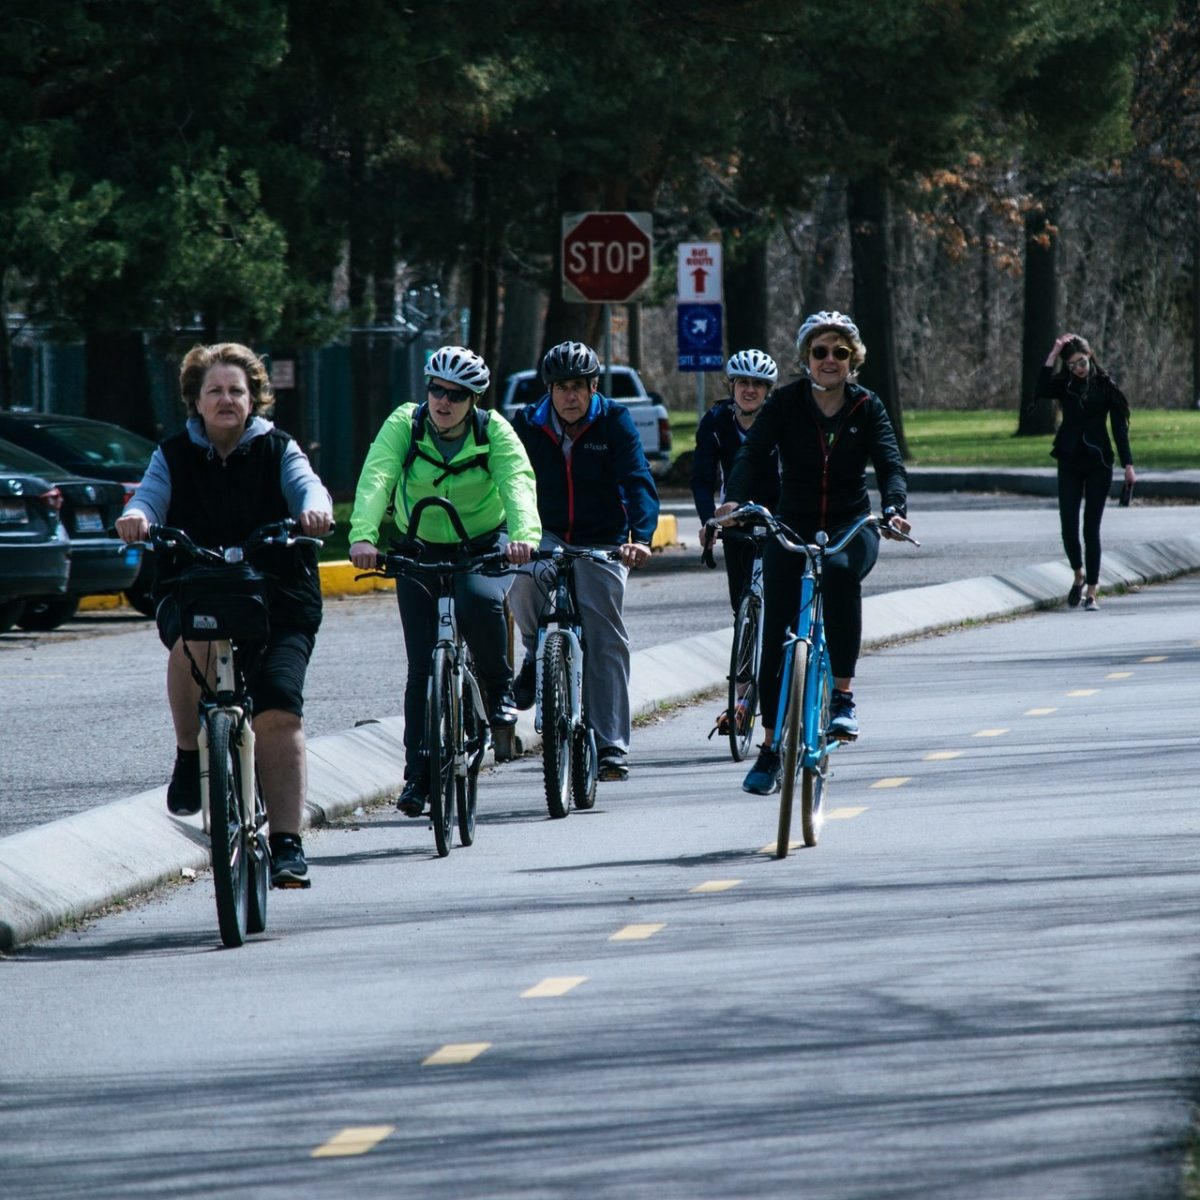 Opinion: cycle lane debates need compromise, not politicisation